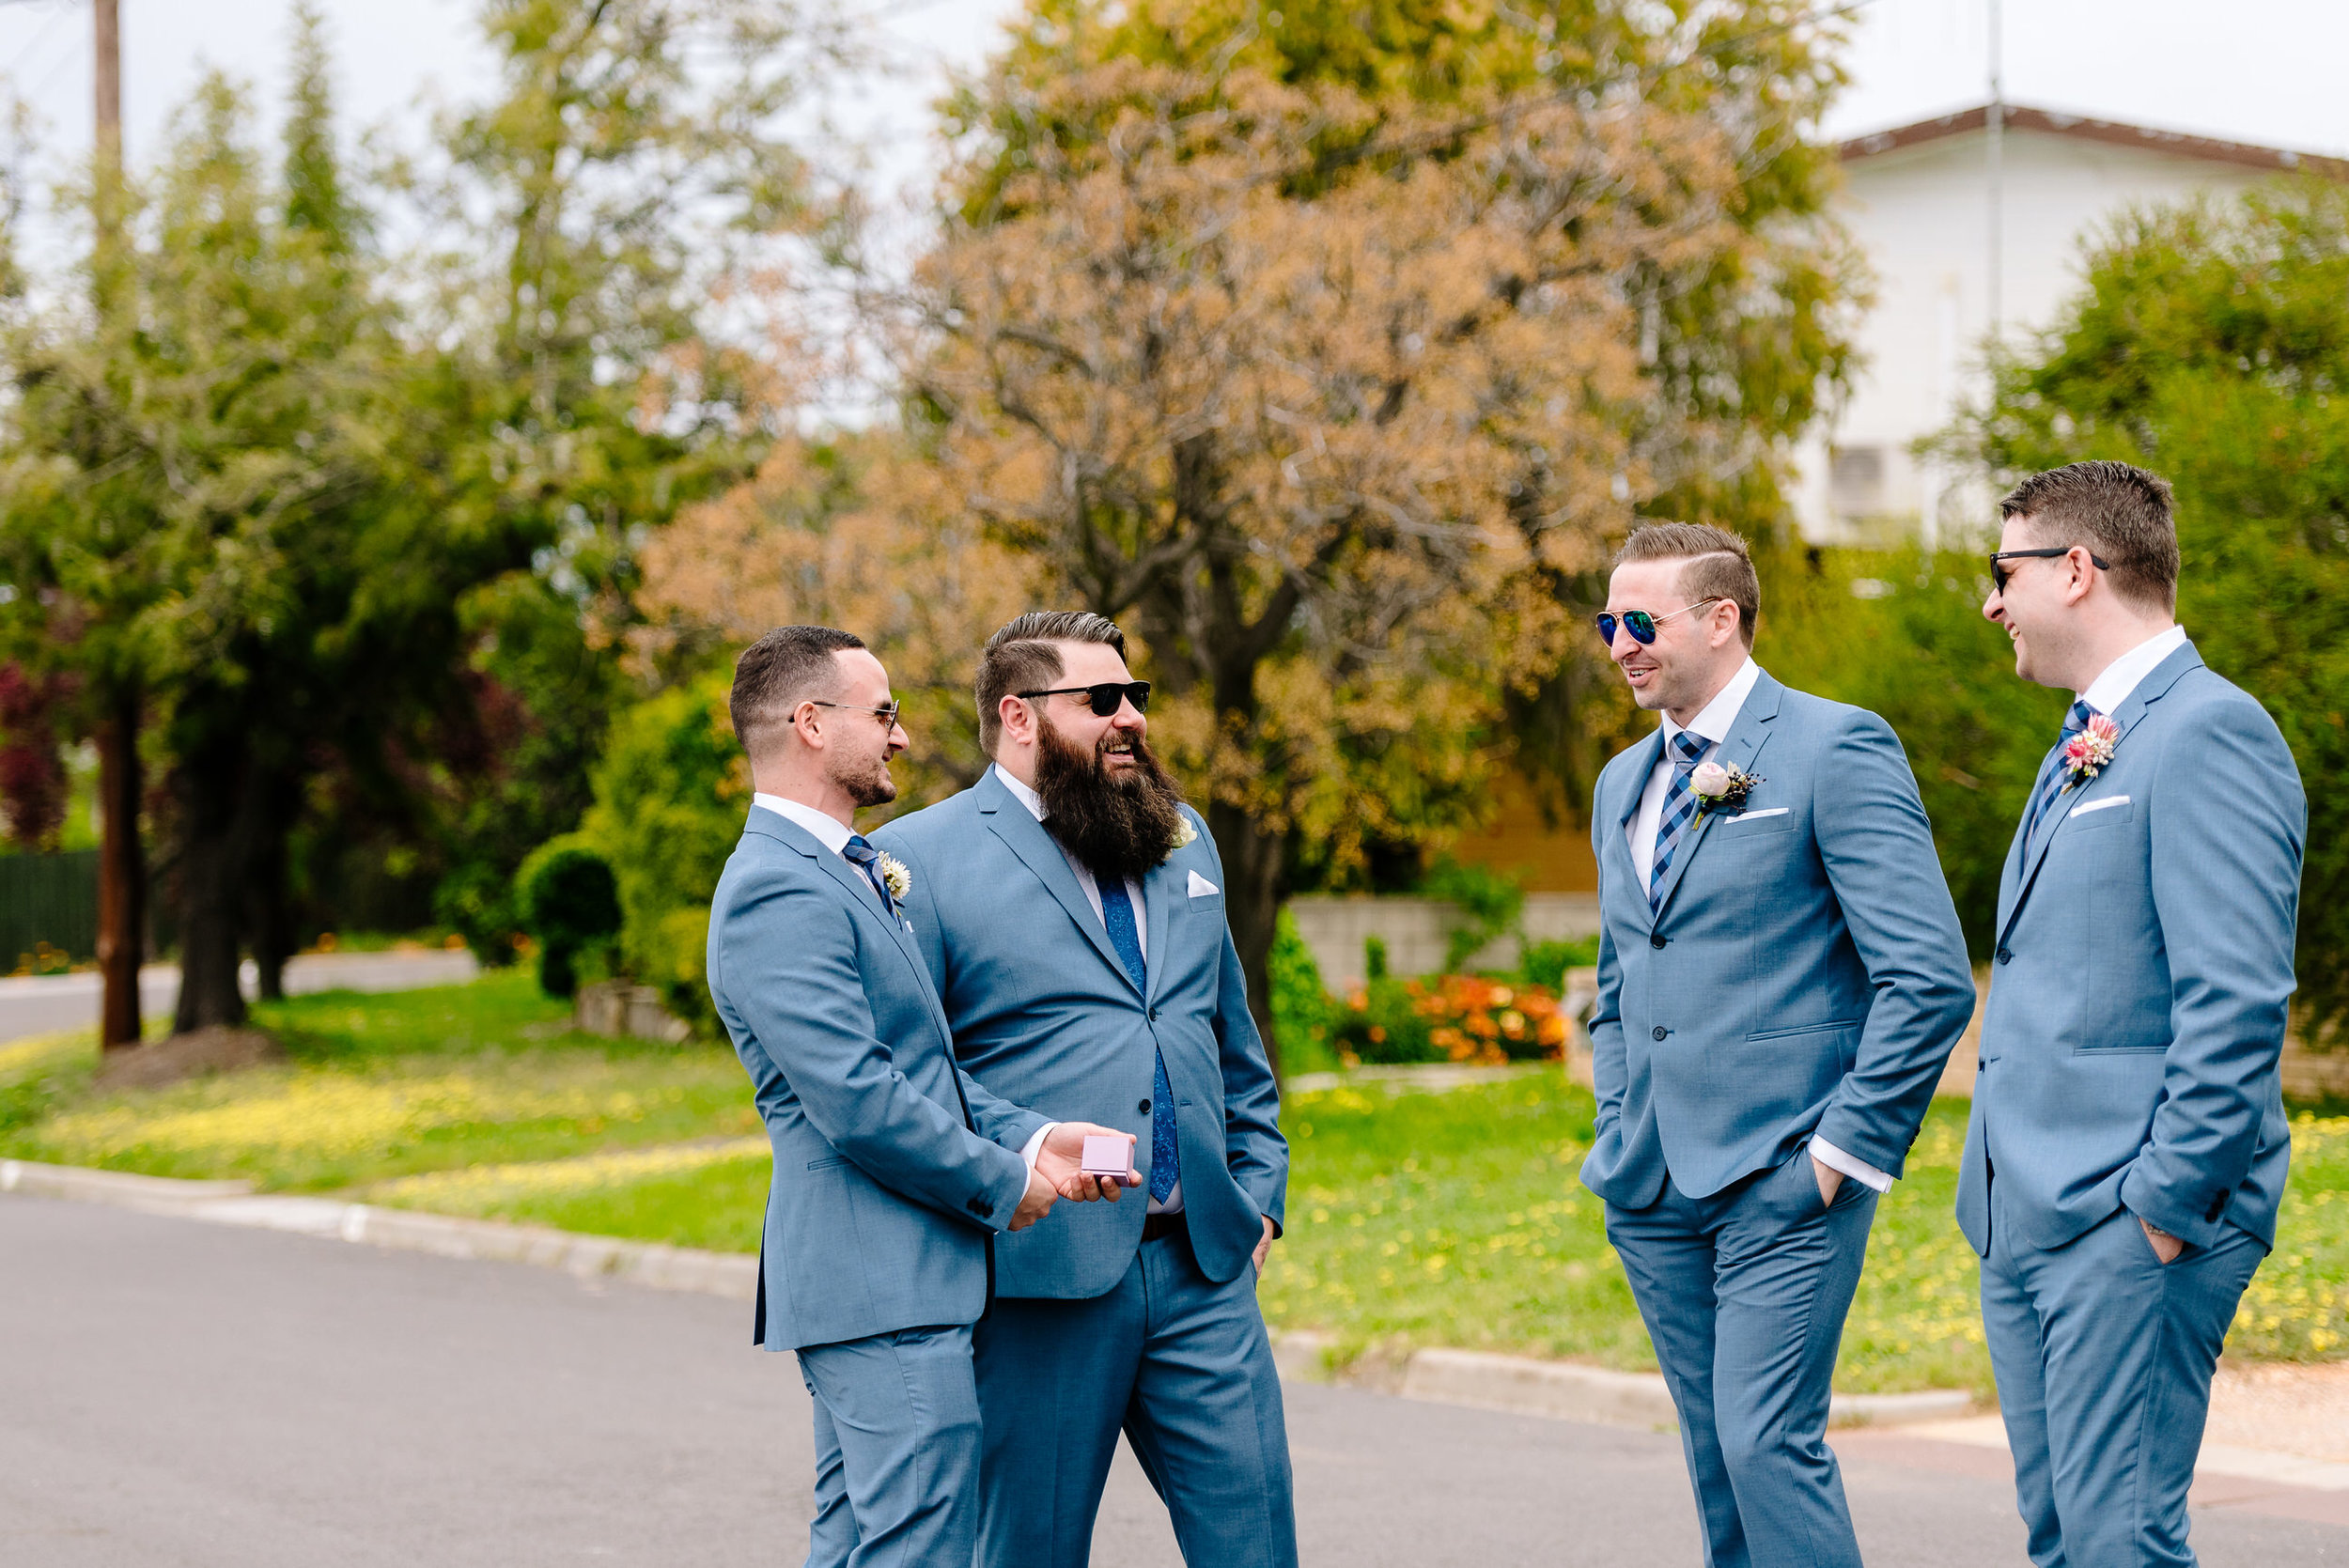 Chateau_Dore_Wedding_Photography_Justin_and_Jim-59.JPG